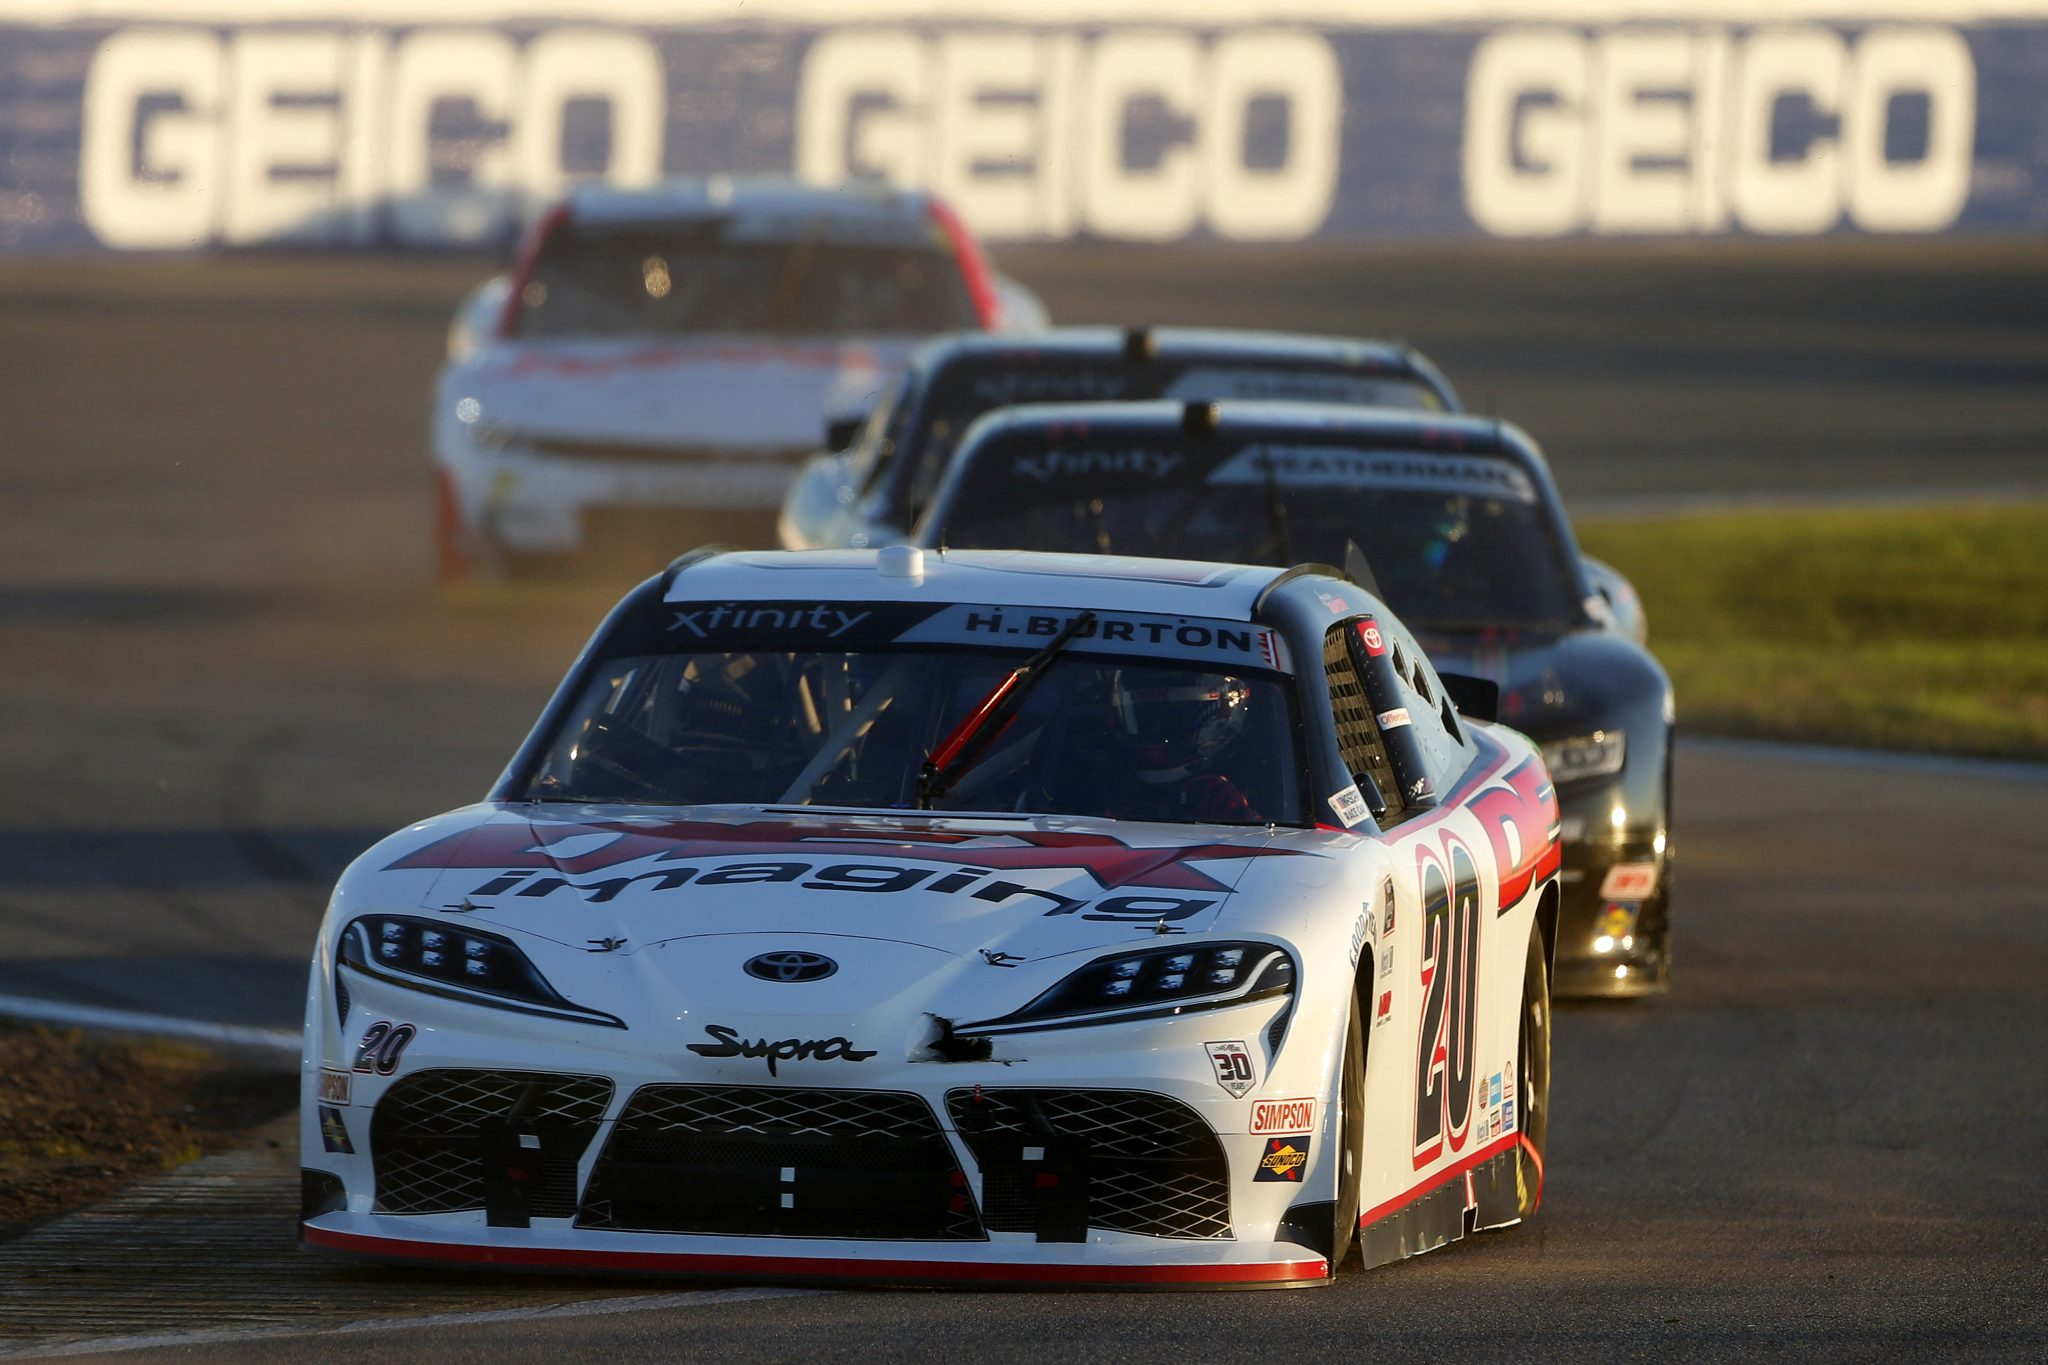 DAYTONA BEACH, FLORIDA - FEBRUARY 20: Harrison Burton, driver of the #20 DEX Imaging Toyota, drives during the NASCAR Xfinity Super Start Batteries 188 At Daytona Presented by O'Reilly at Daytona International Speedway on February 20, 2021 in Daytona Beach, Florida. (Photo by Brian Lawdermilk/Getty Images) | Getty Images